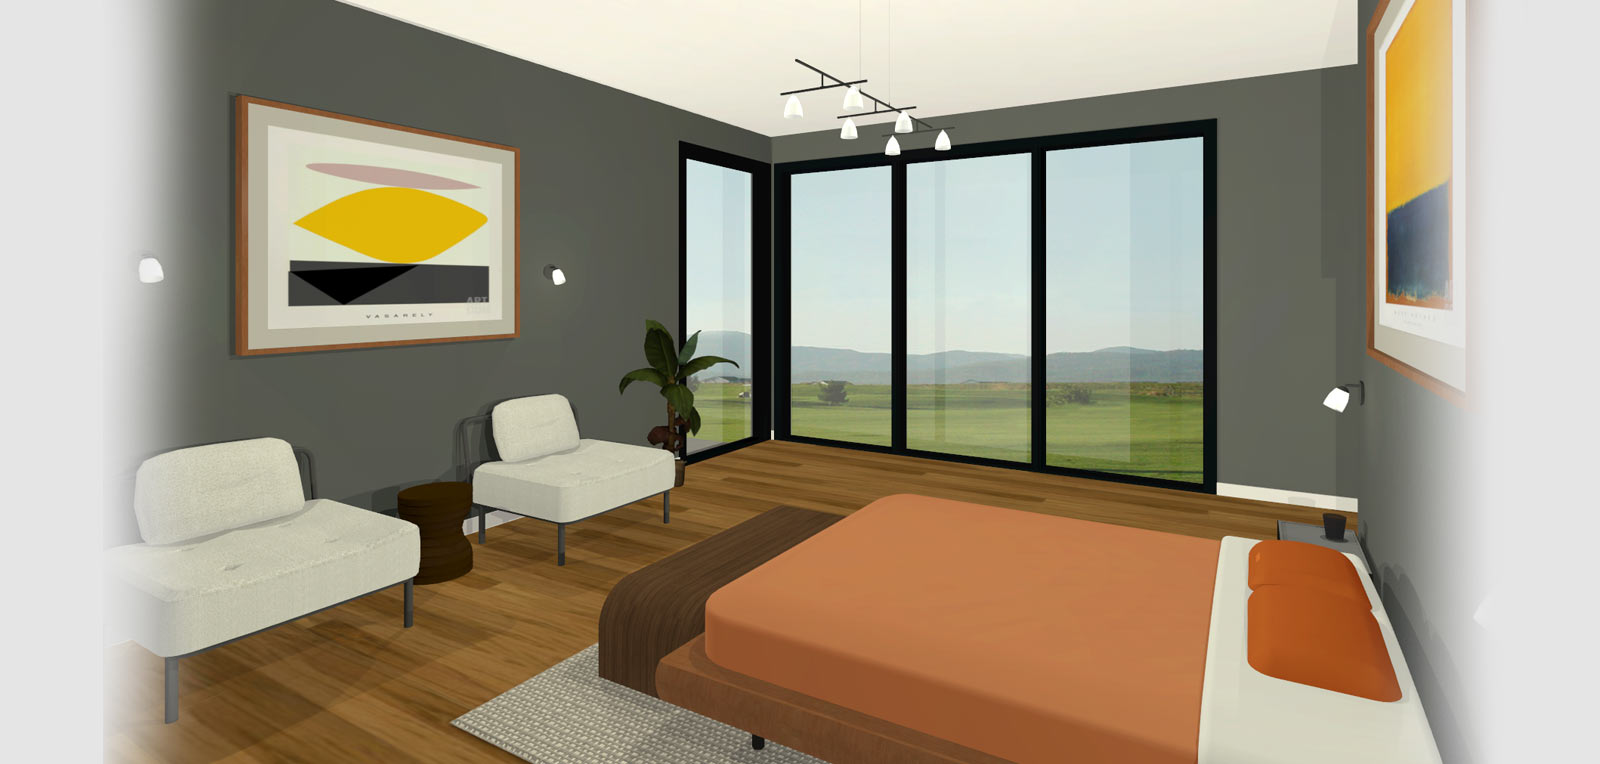 Home designer interior design software Interior designing of your home